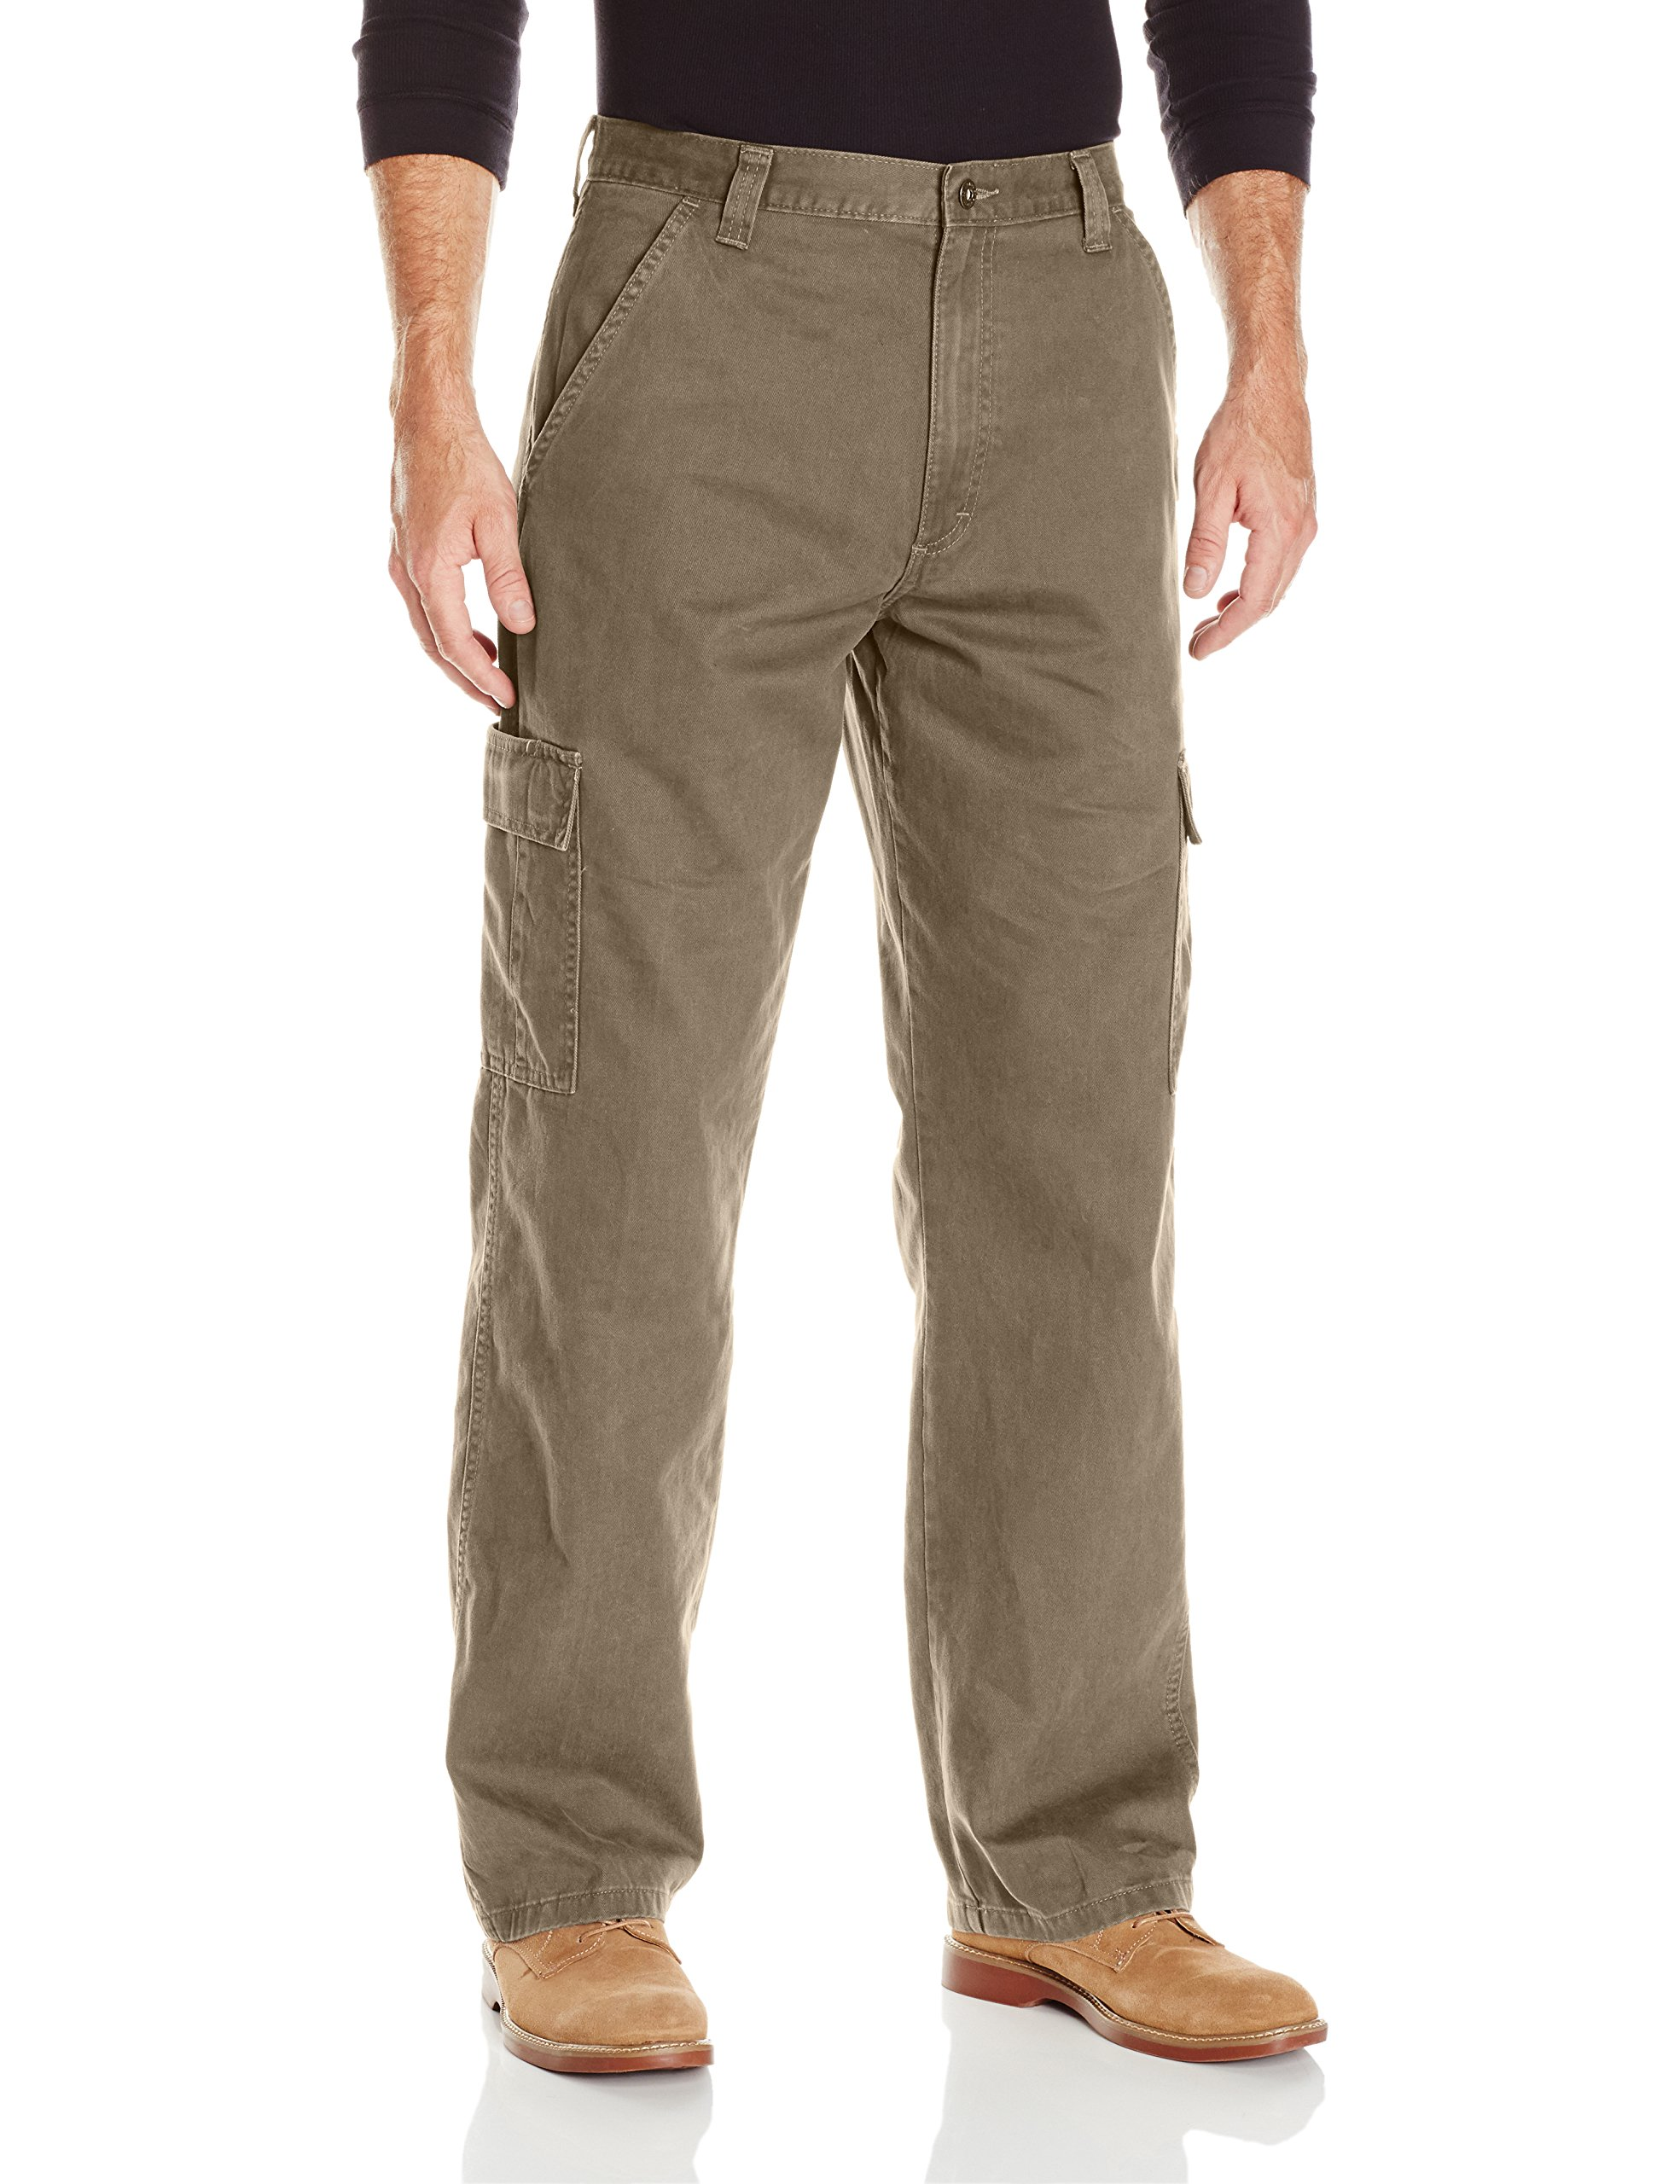 Wrangler Authentics Men's Classic Twill Relaxed Fit Cargo Pant, Military Khaki Ripstop, 34 x 32